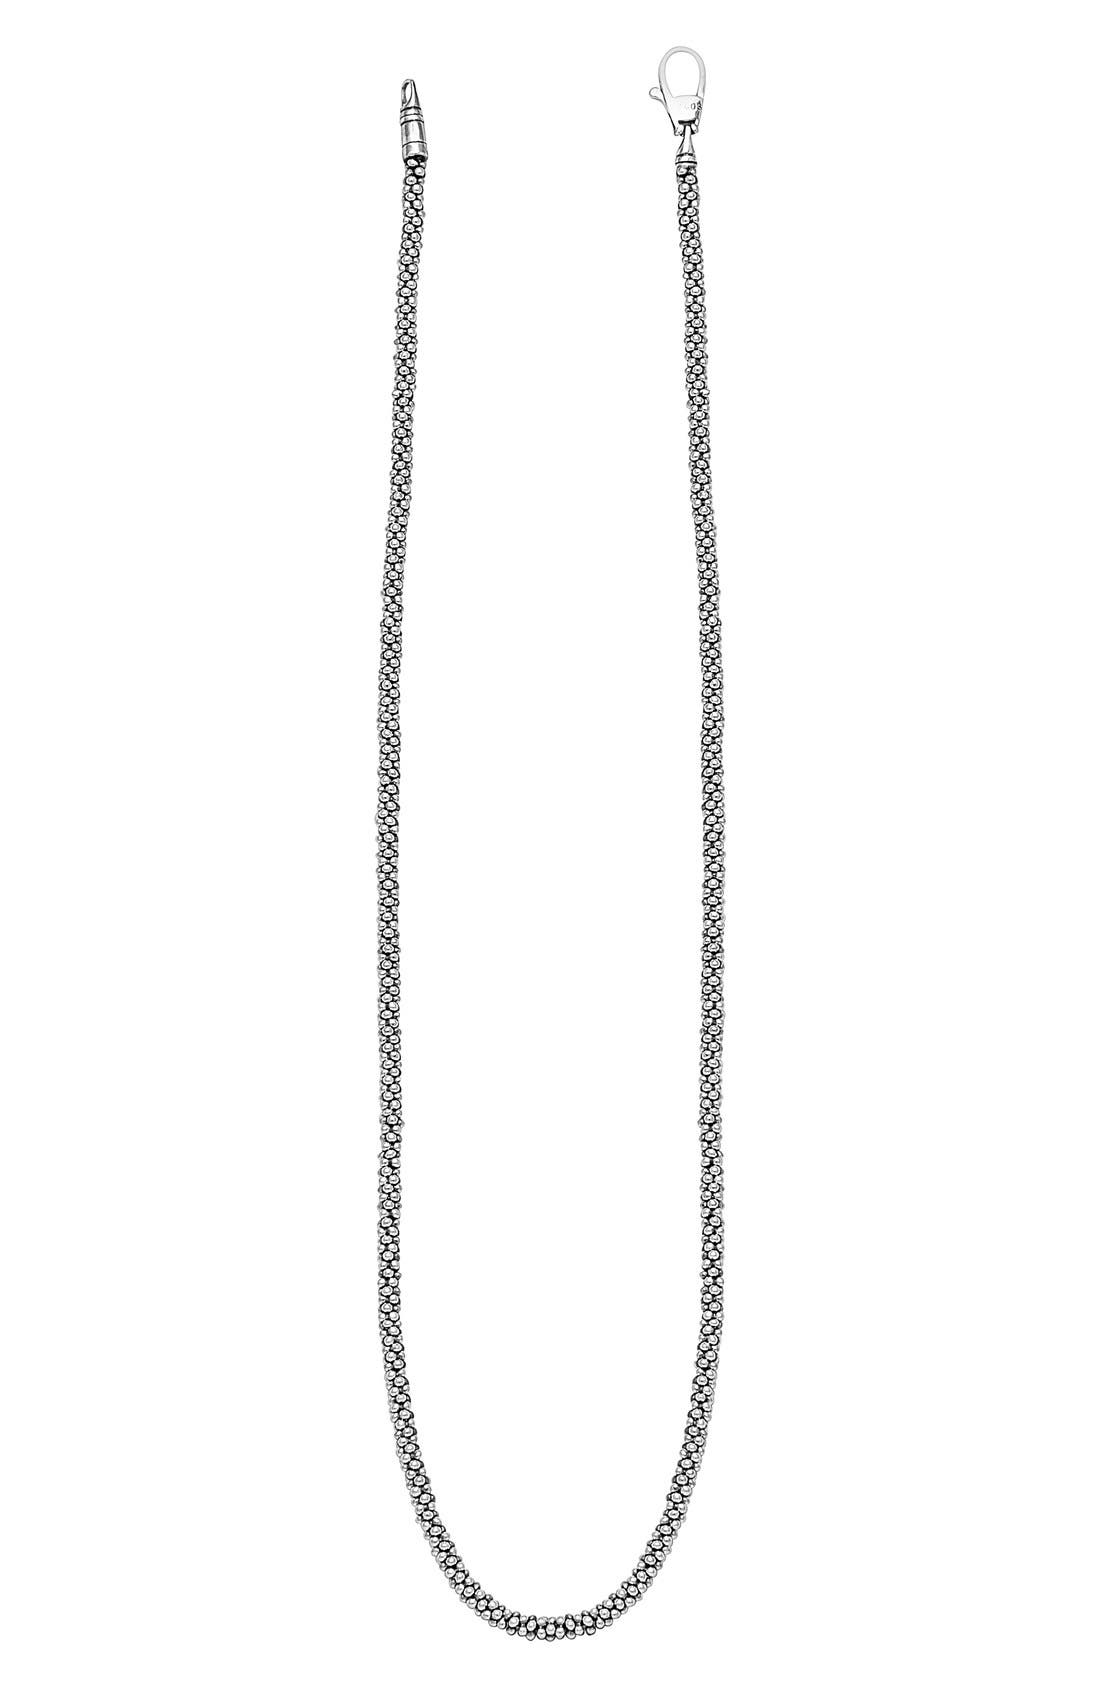 Sterling Silver Caviar 3mm Rope Necklace,                             Alternate thumbnail 4, color,                             Sterling Silver